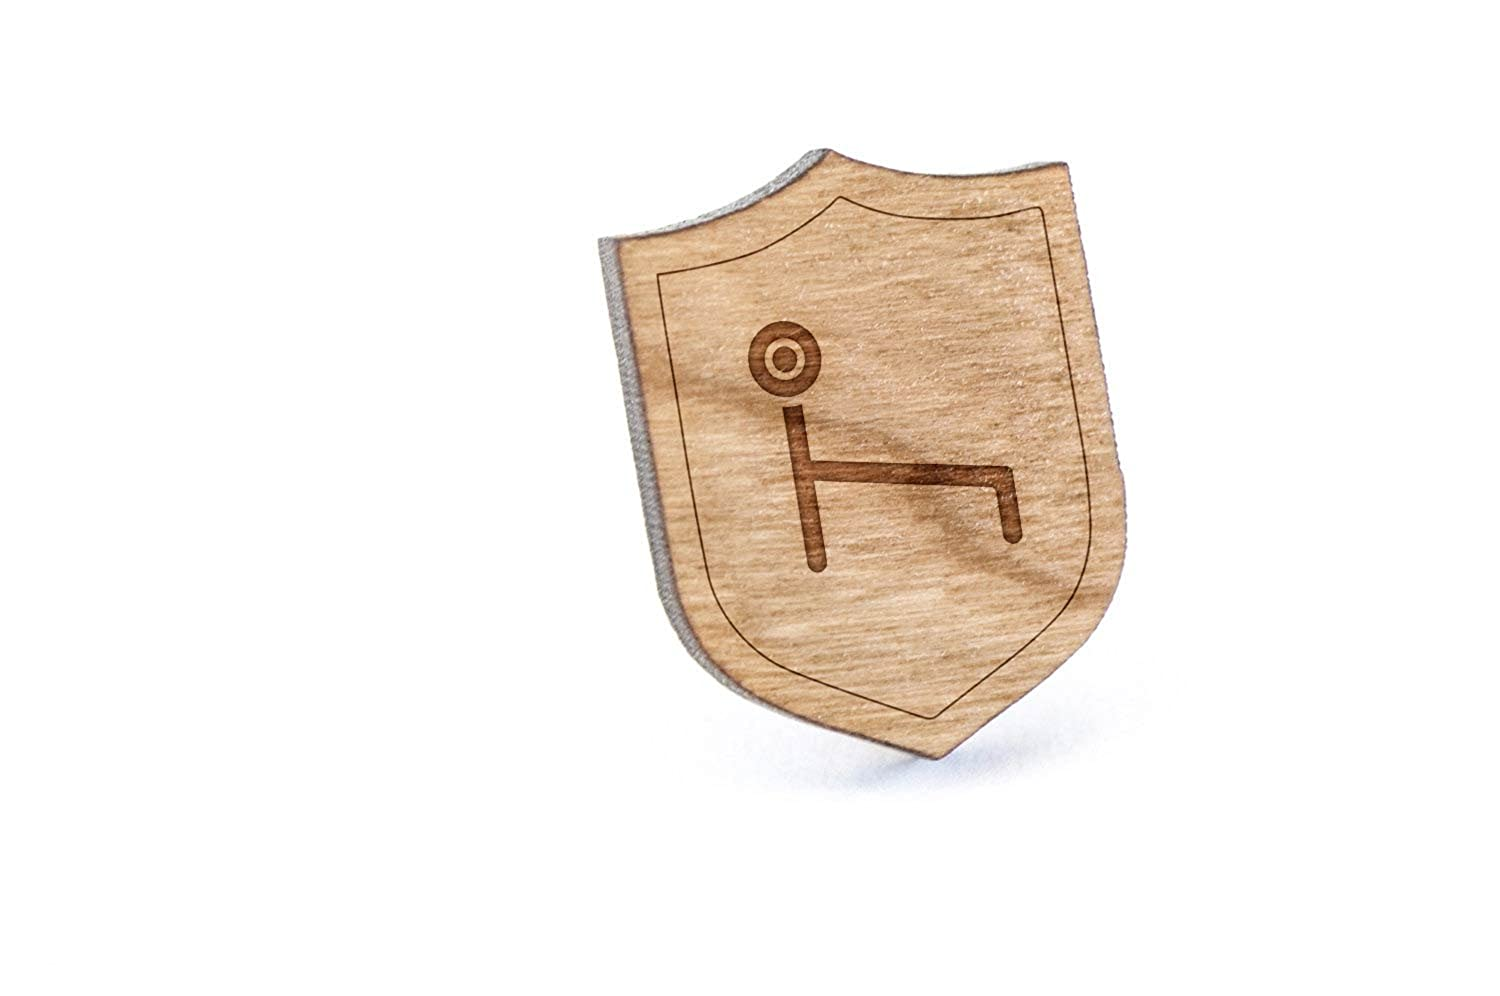 Workout Bench Lapel Pin Wooden Pin And Tie Tack Rustic